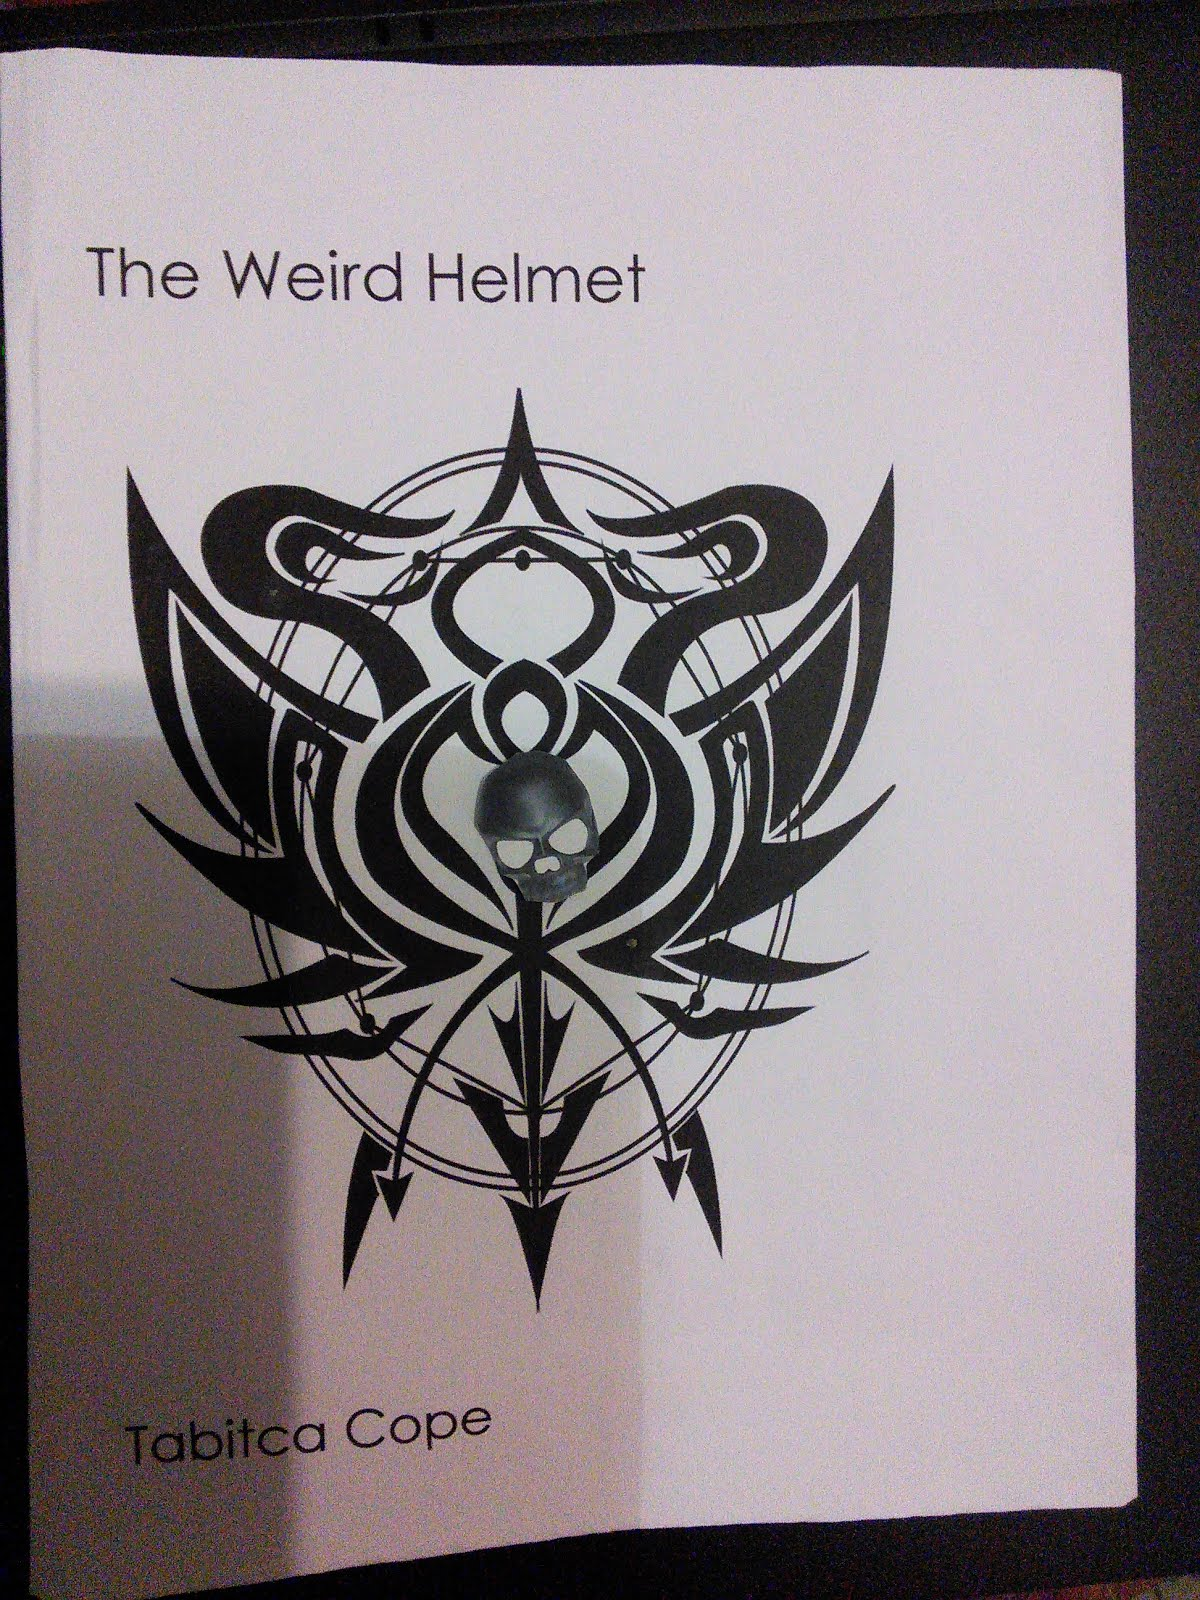 The Weird Helmet